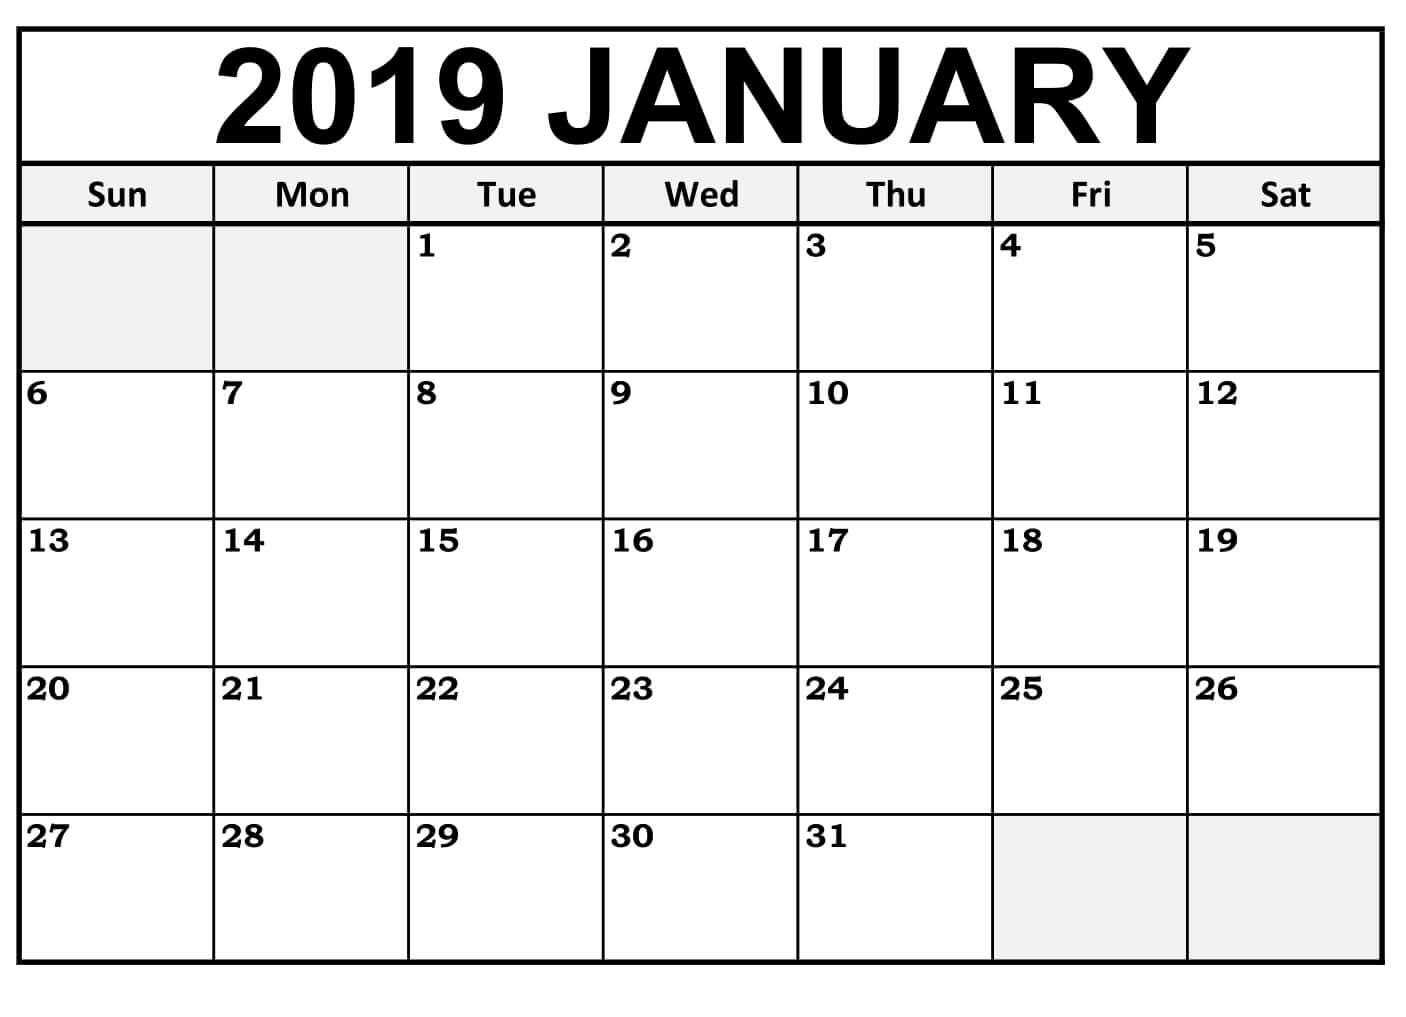 Printable January 2019 Calendar With Notes Wallpaper